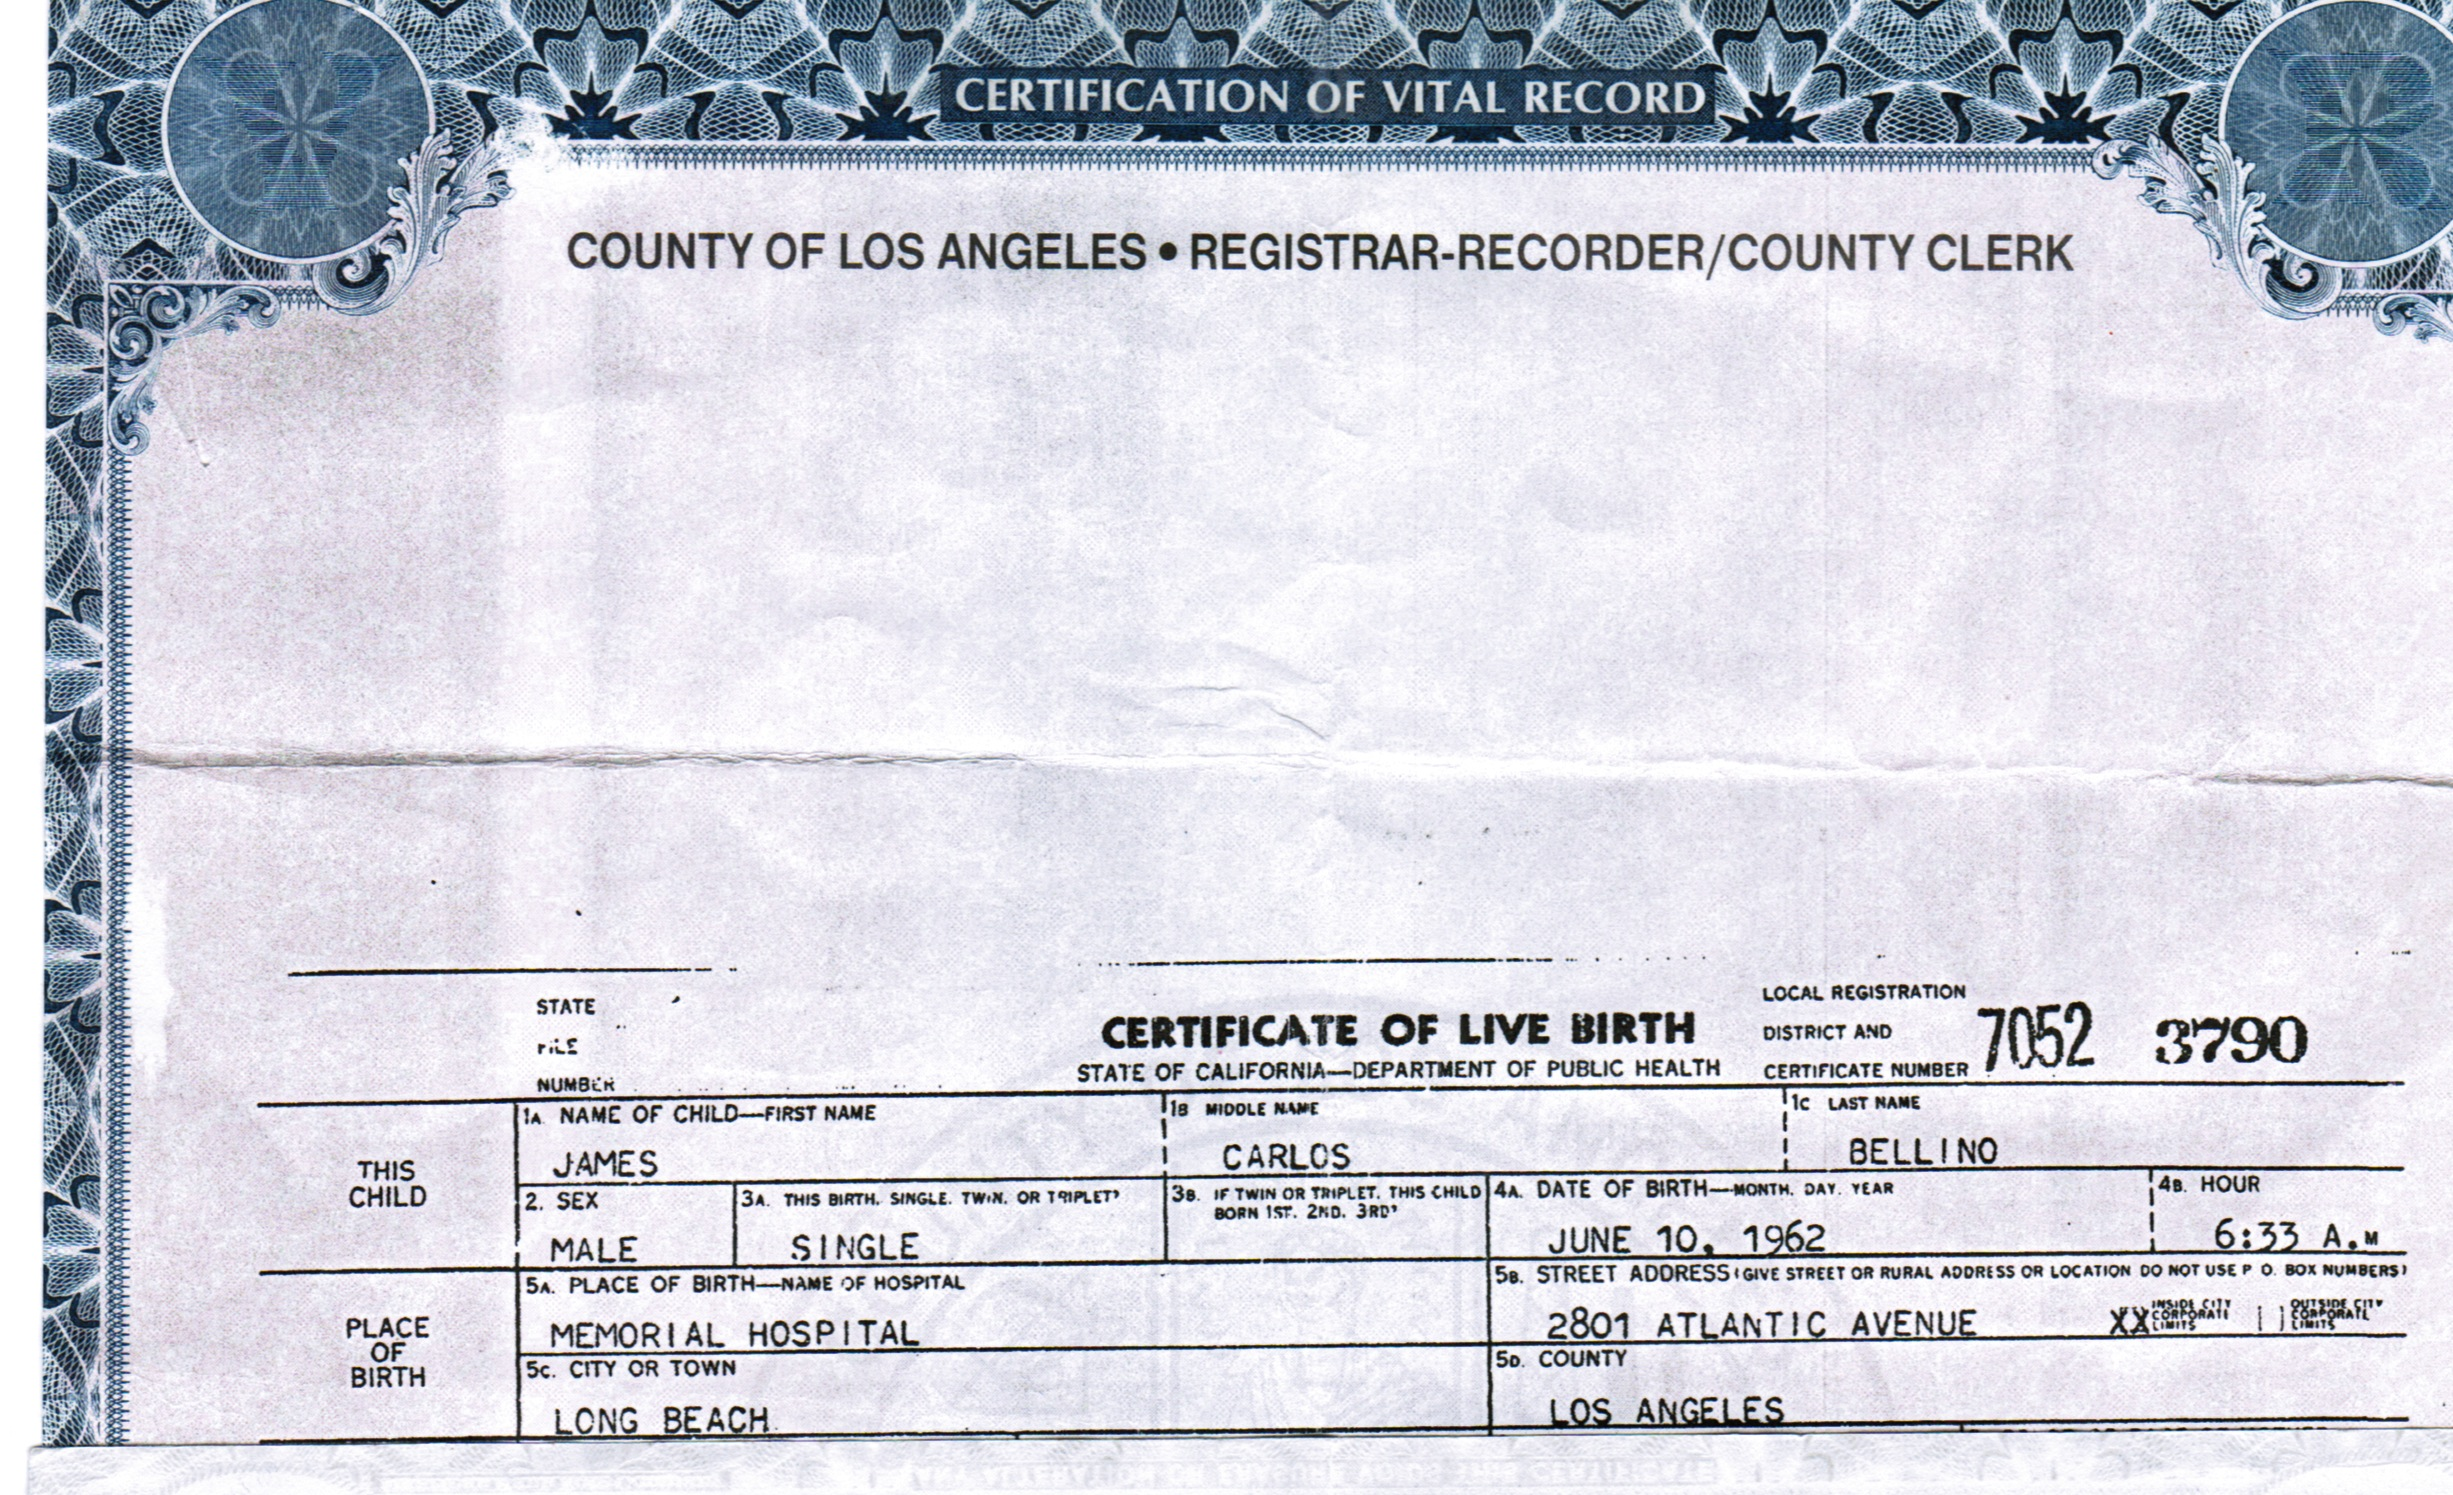 Jim bellino bio for the real truth click here jim bellino jim bellino birth certificate xflitez Images